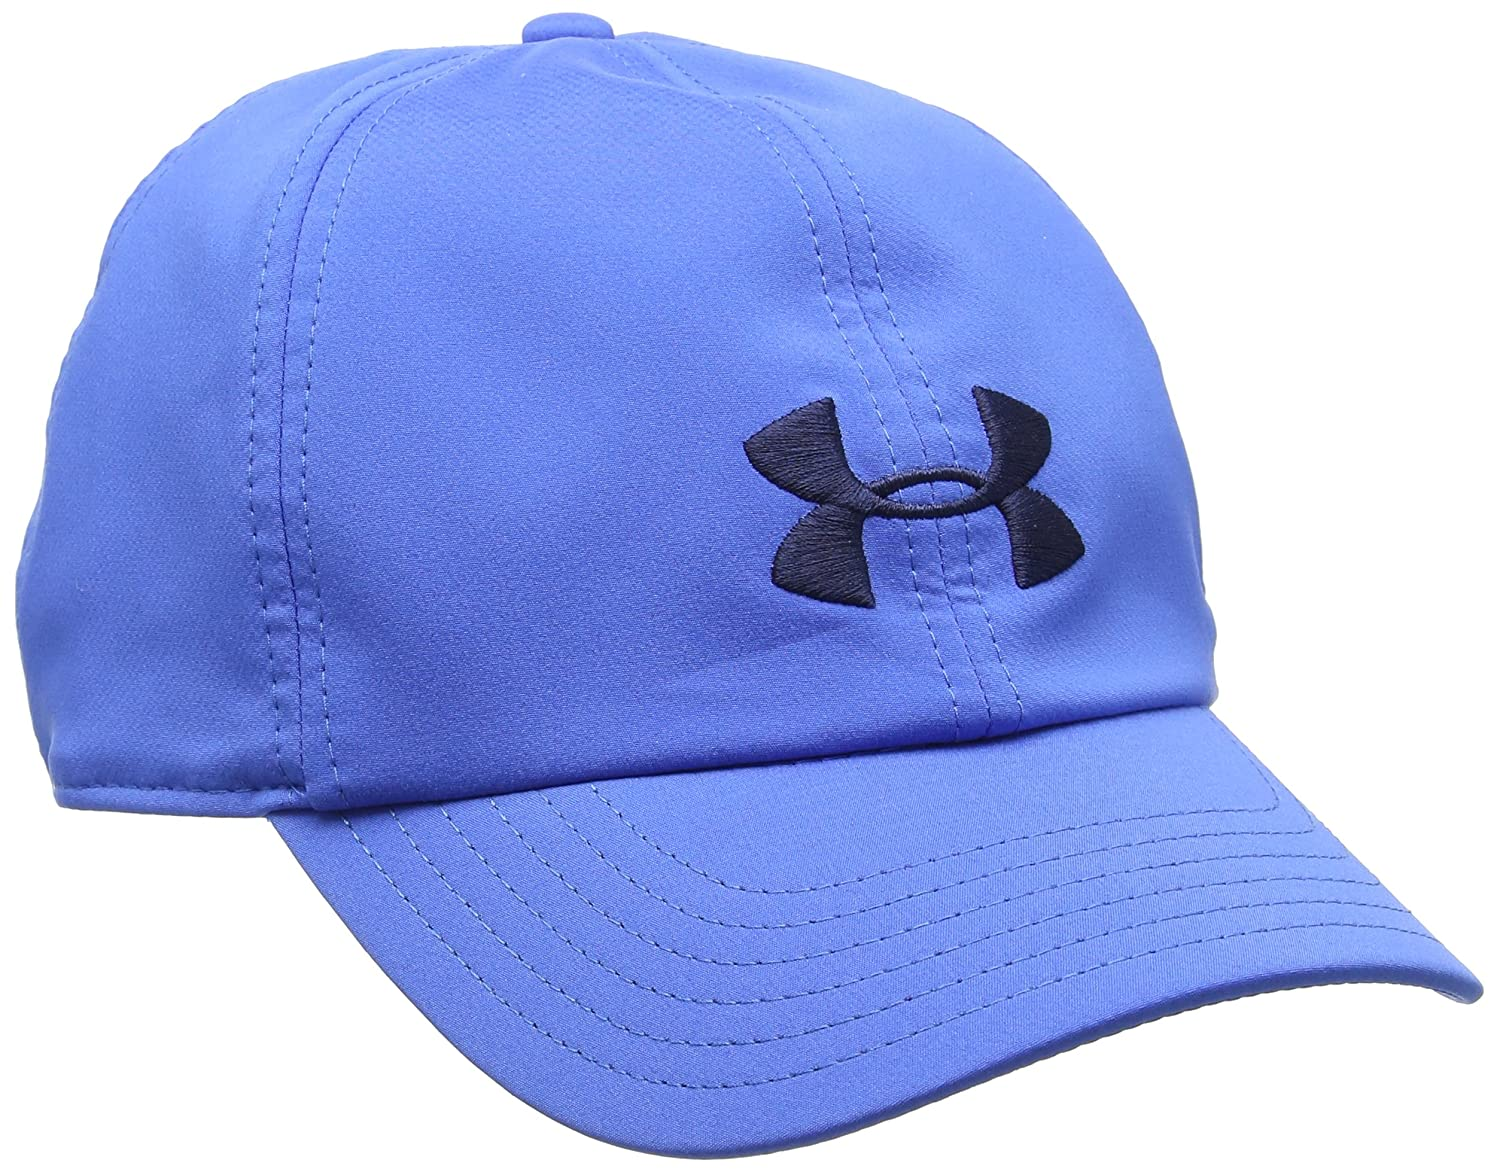 Under Armour Women's Renegade Cap Under Armour Accessories 1272182